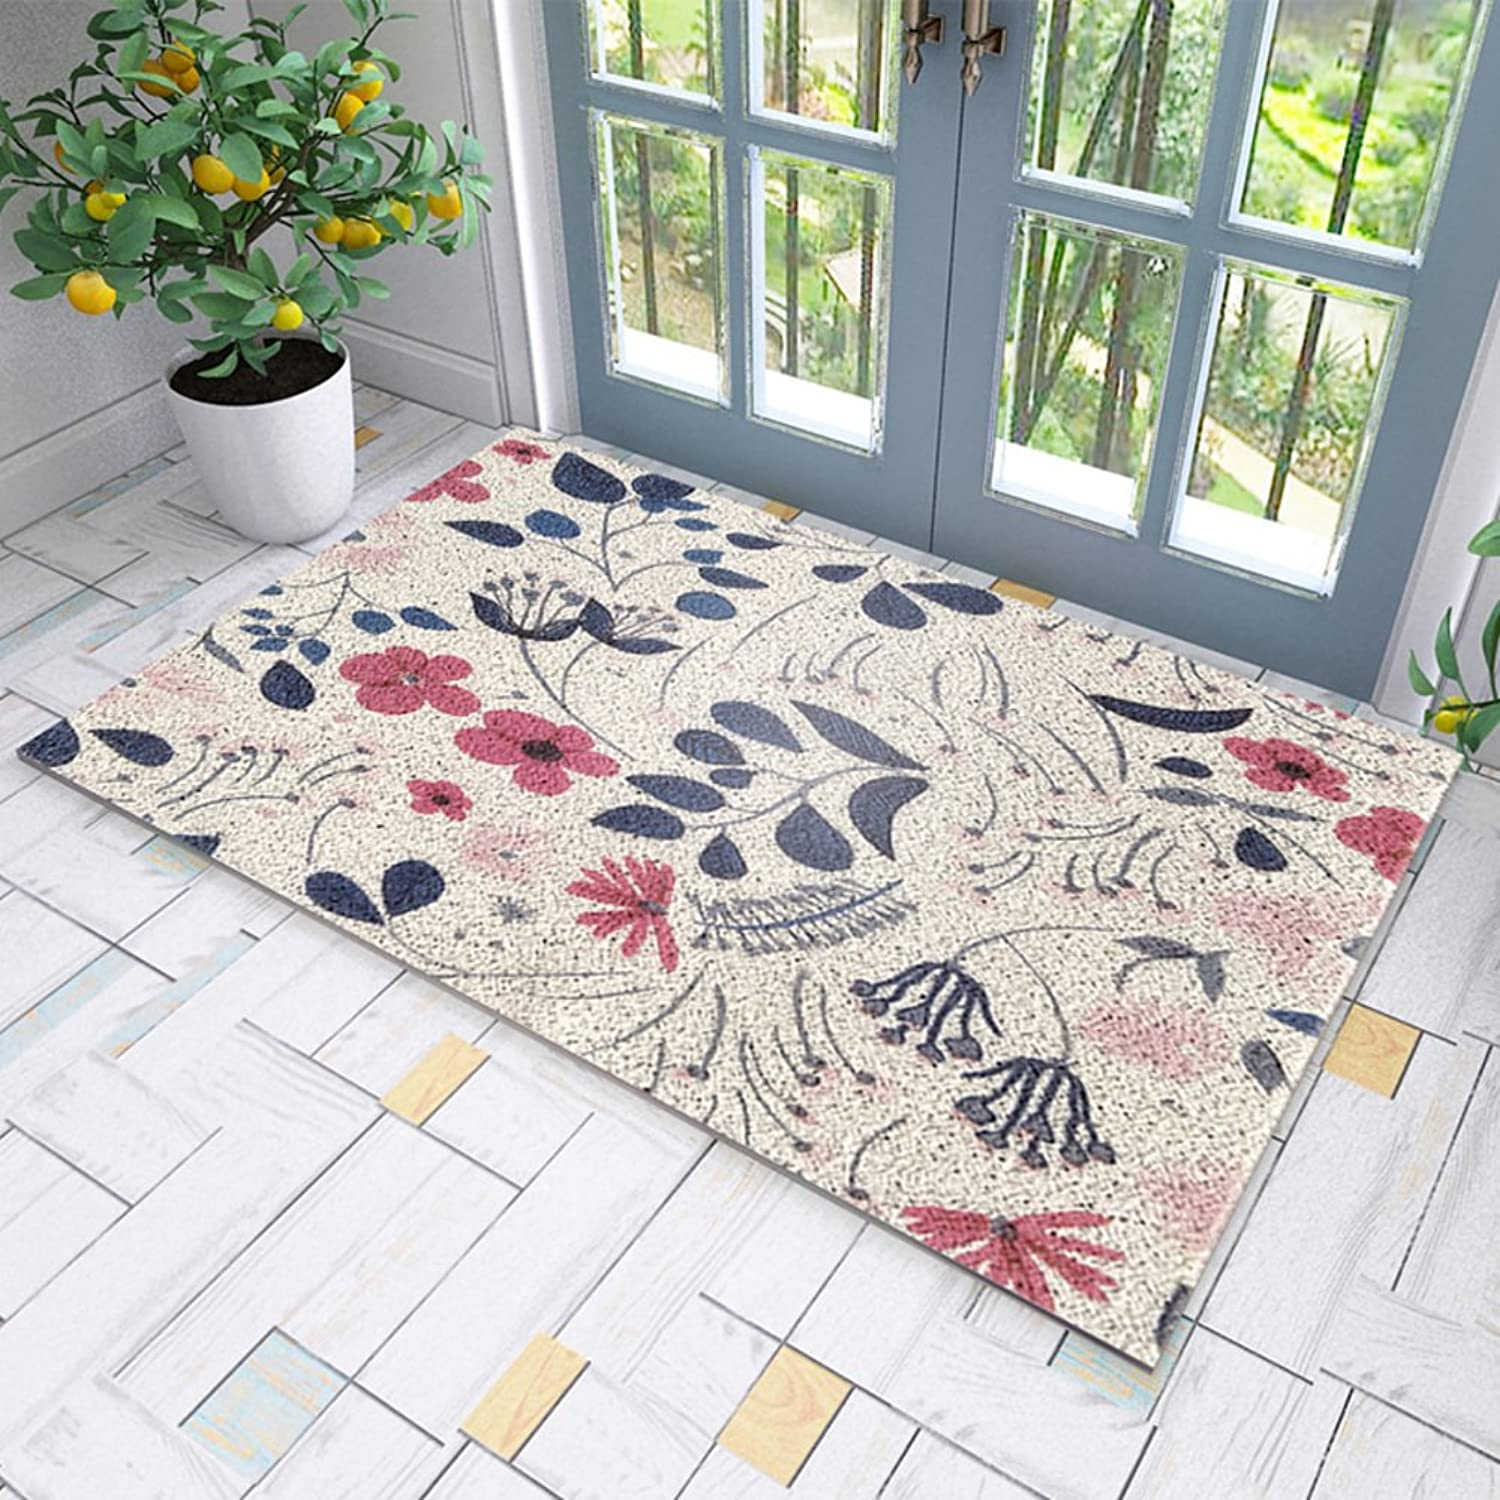 Outdoor Indoor Door Mats I Love Africa Mali Flag Non-Slip Absorbent Entryway Area Rug Rugs Doormats 19.5 *31.5 Home & Kitchen